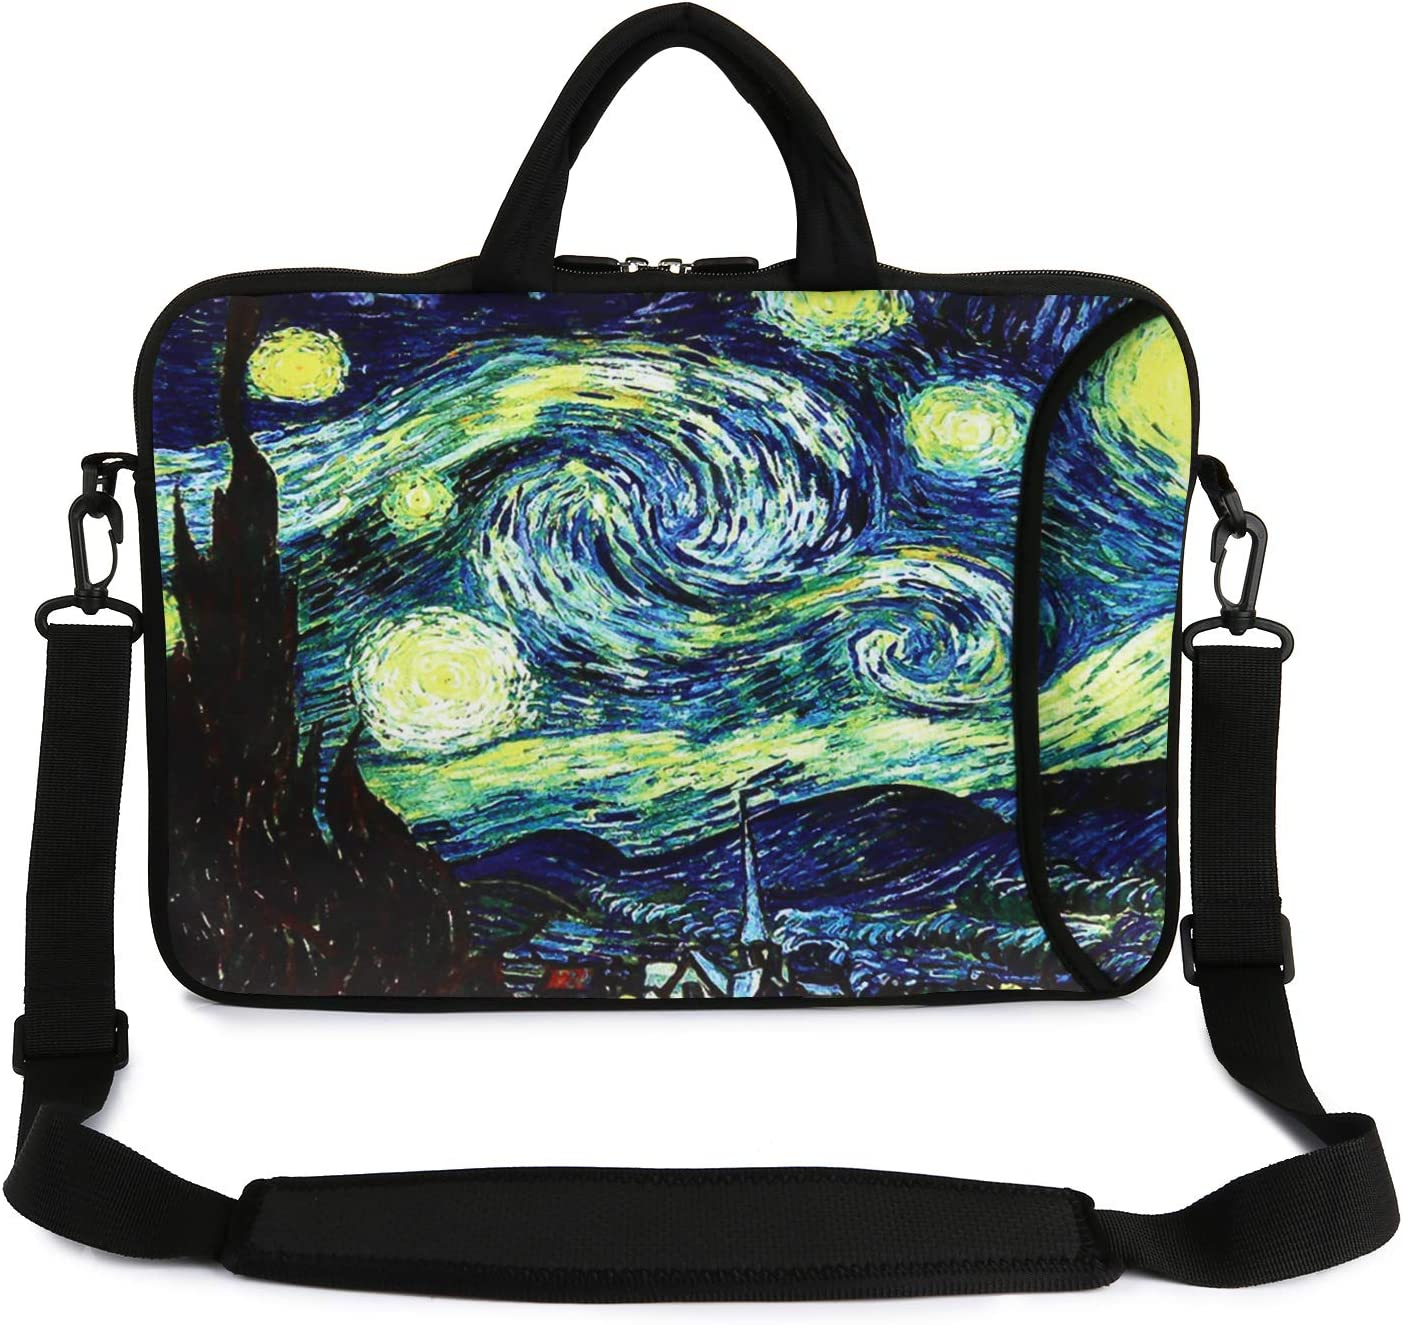 "Violet Mist 13"" 15"" 15.6"" Neoprene Laptop Sleeve Bag Waterproof Sleeve Case Adjustable Shoulder Strap External Pocket(14"" 15""-15.6"", Starry Sky)"